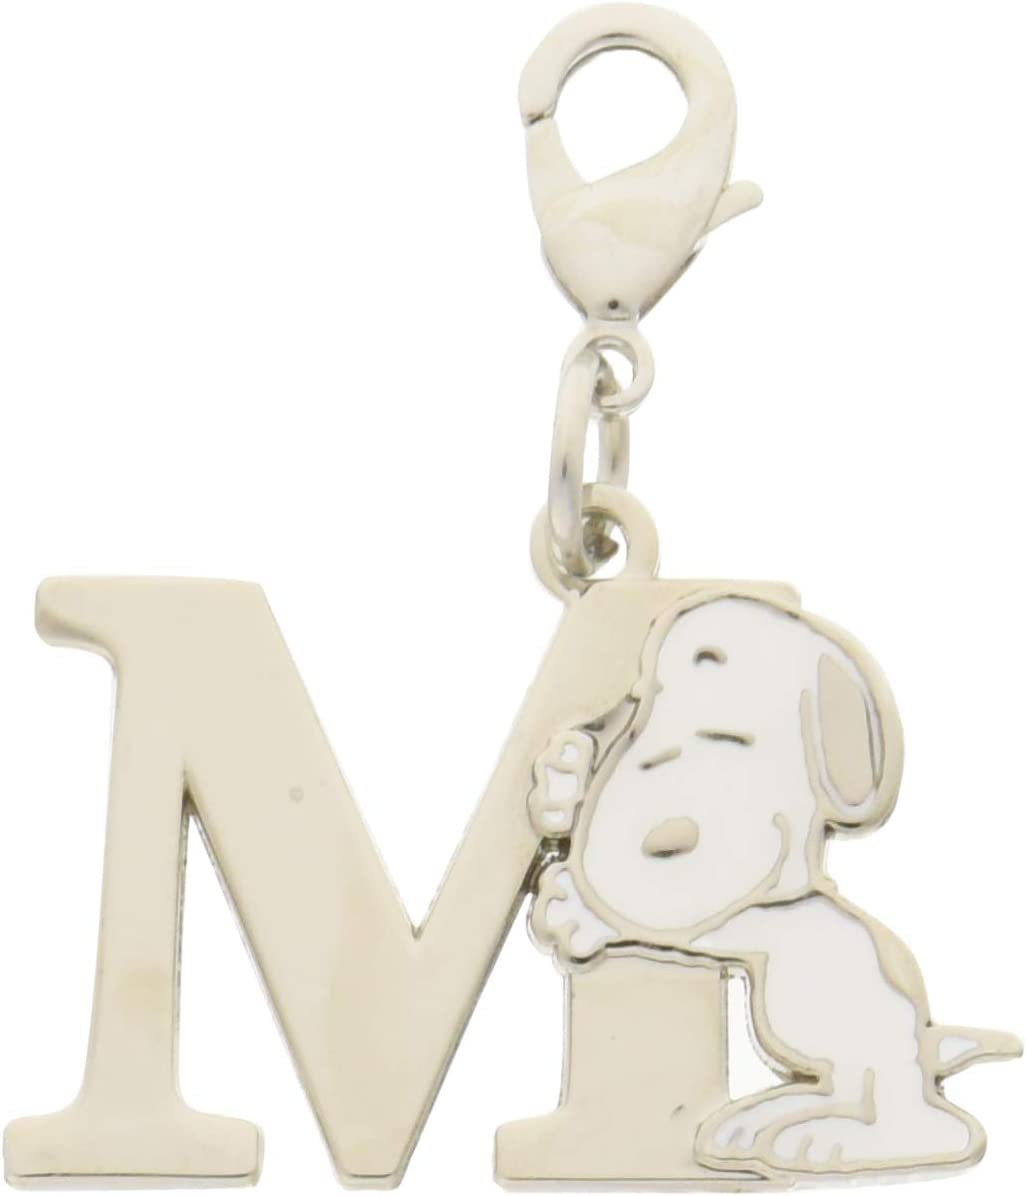 Peanuts Key Charm Collection Snoopy Initials M Key Chain